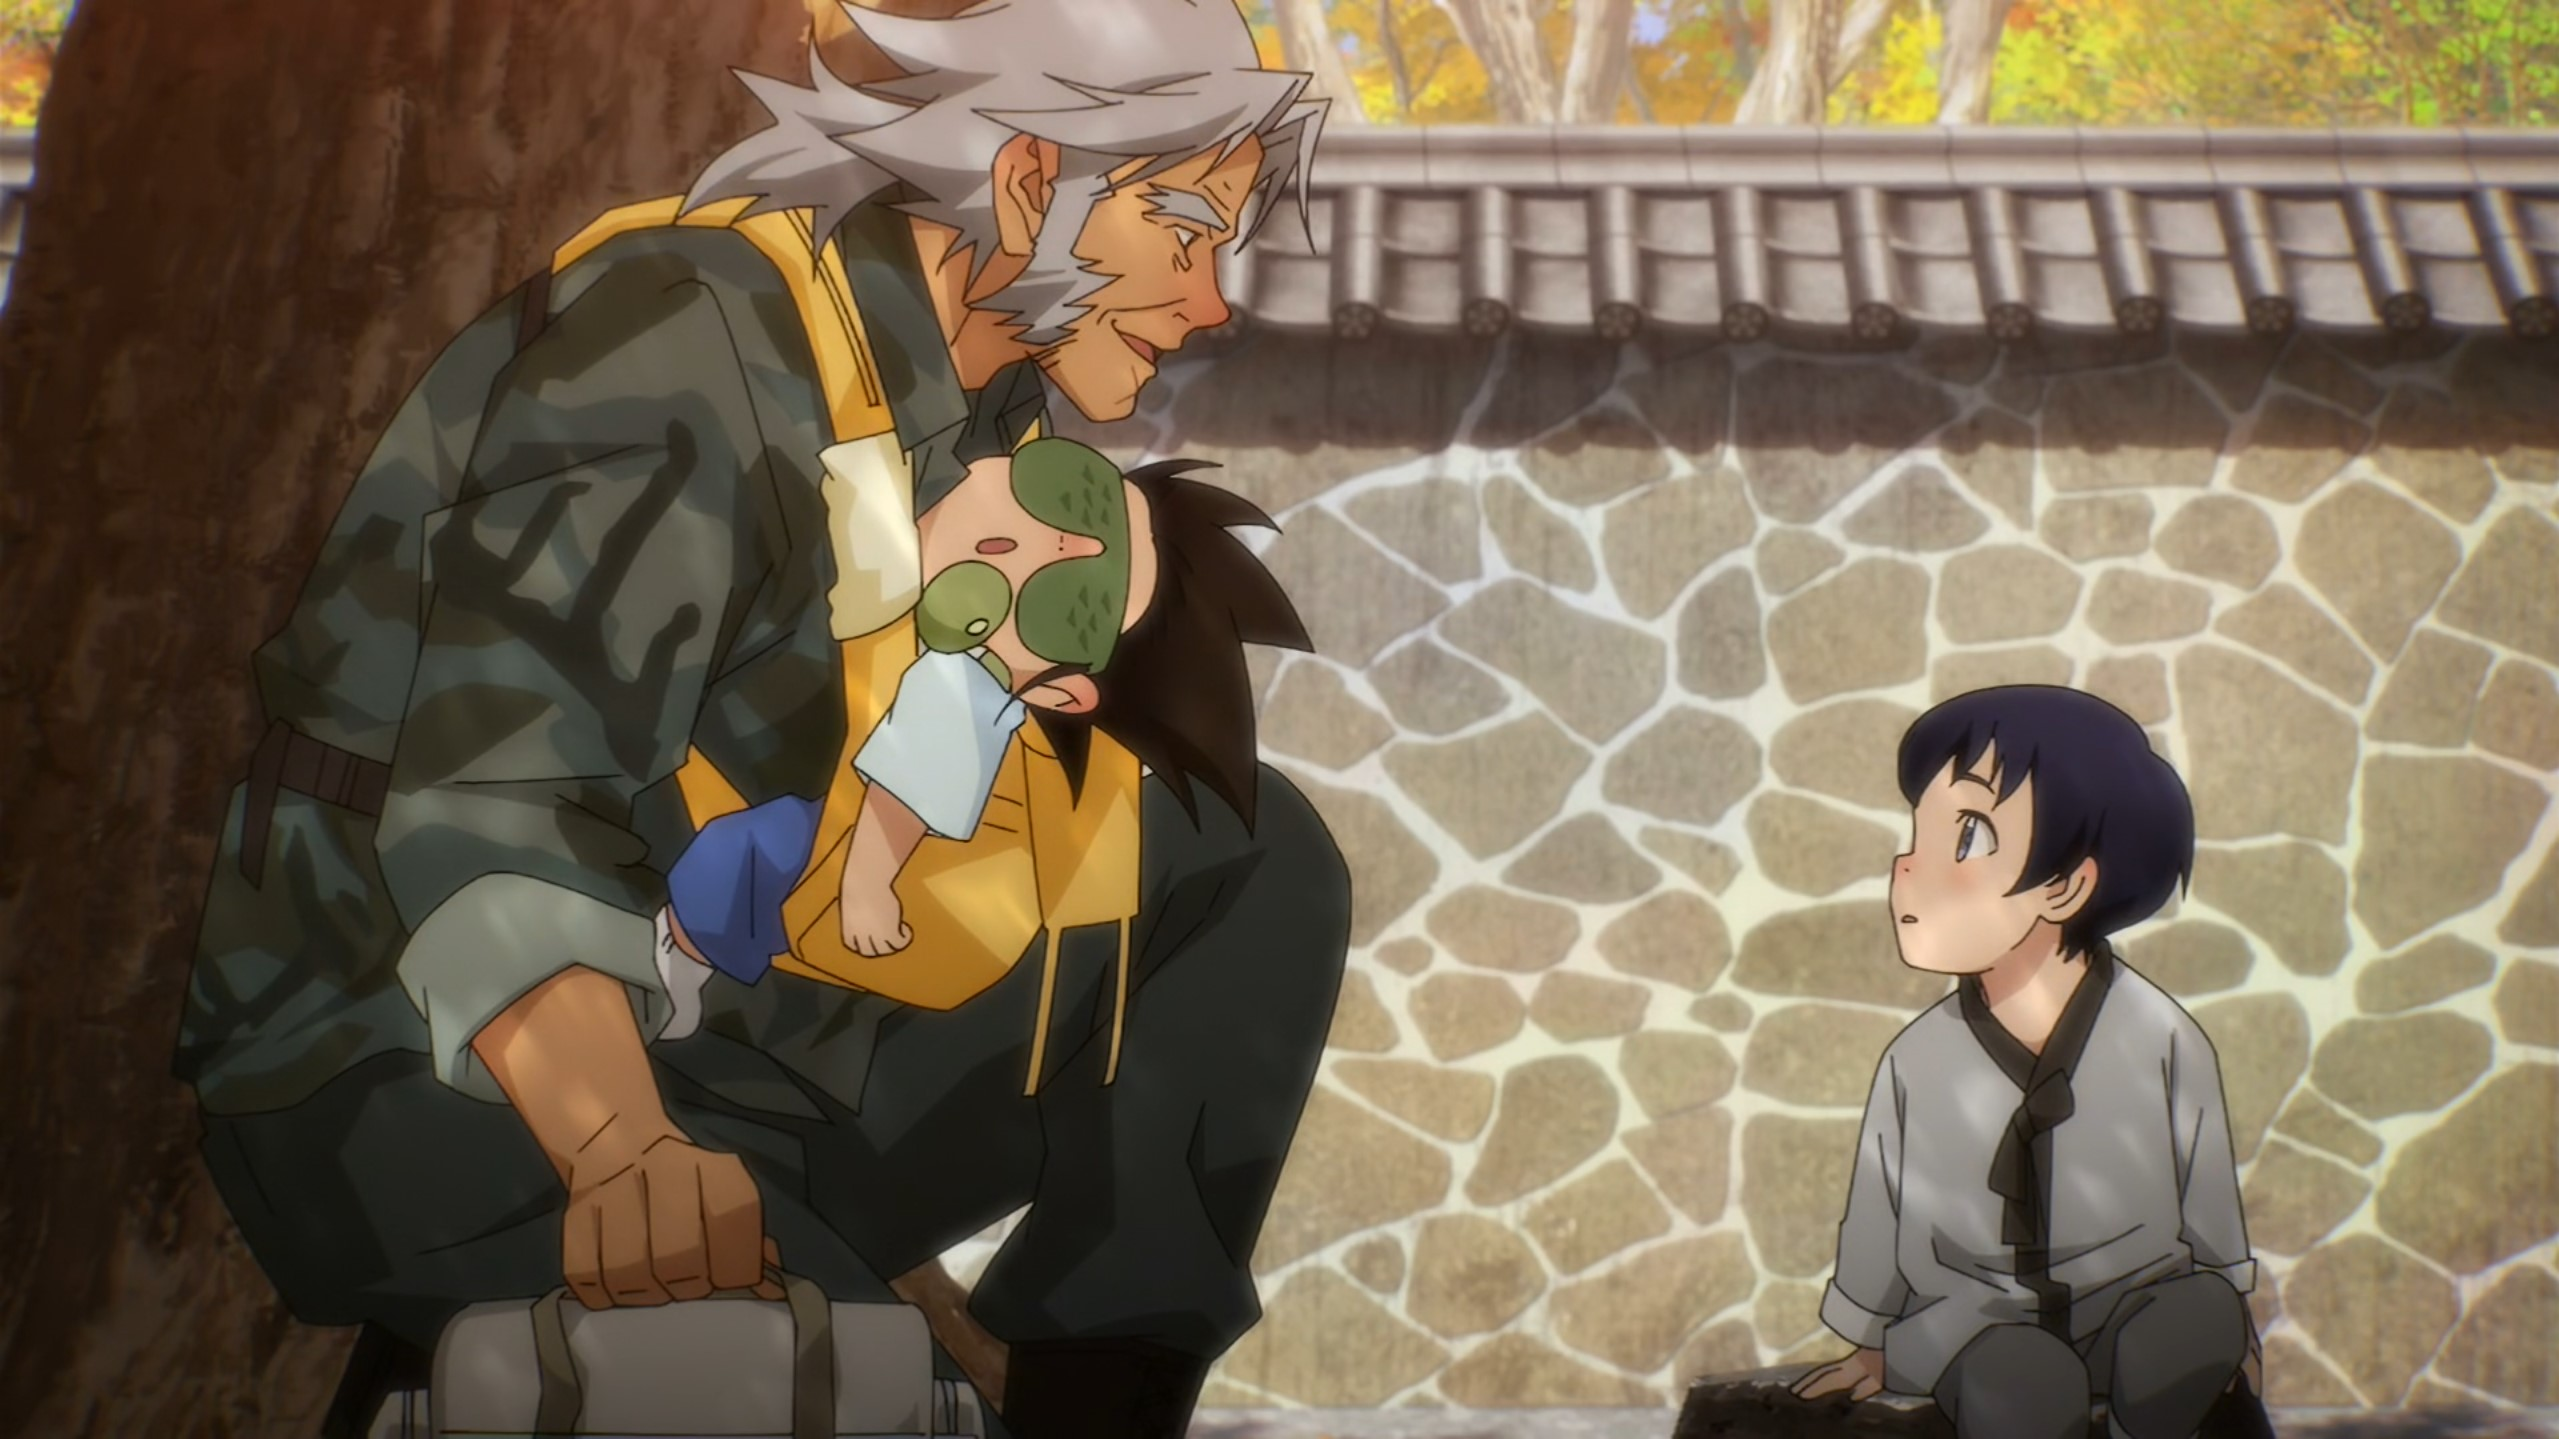 The god of high school episode 08